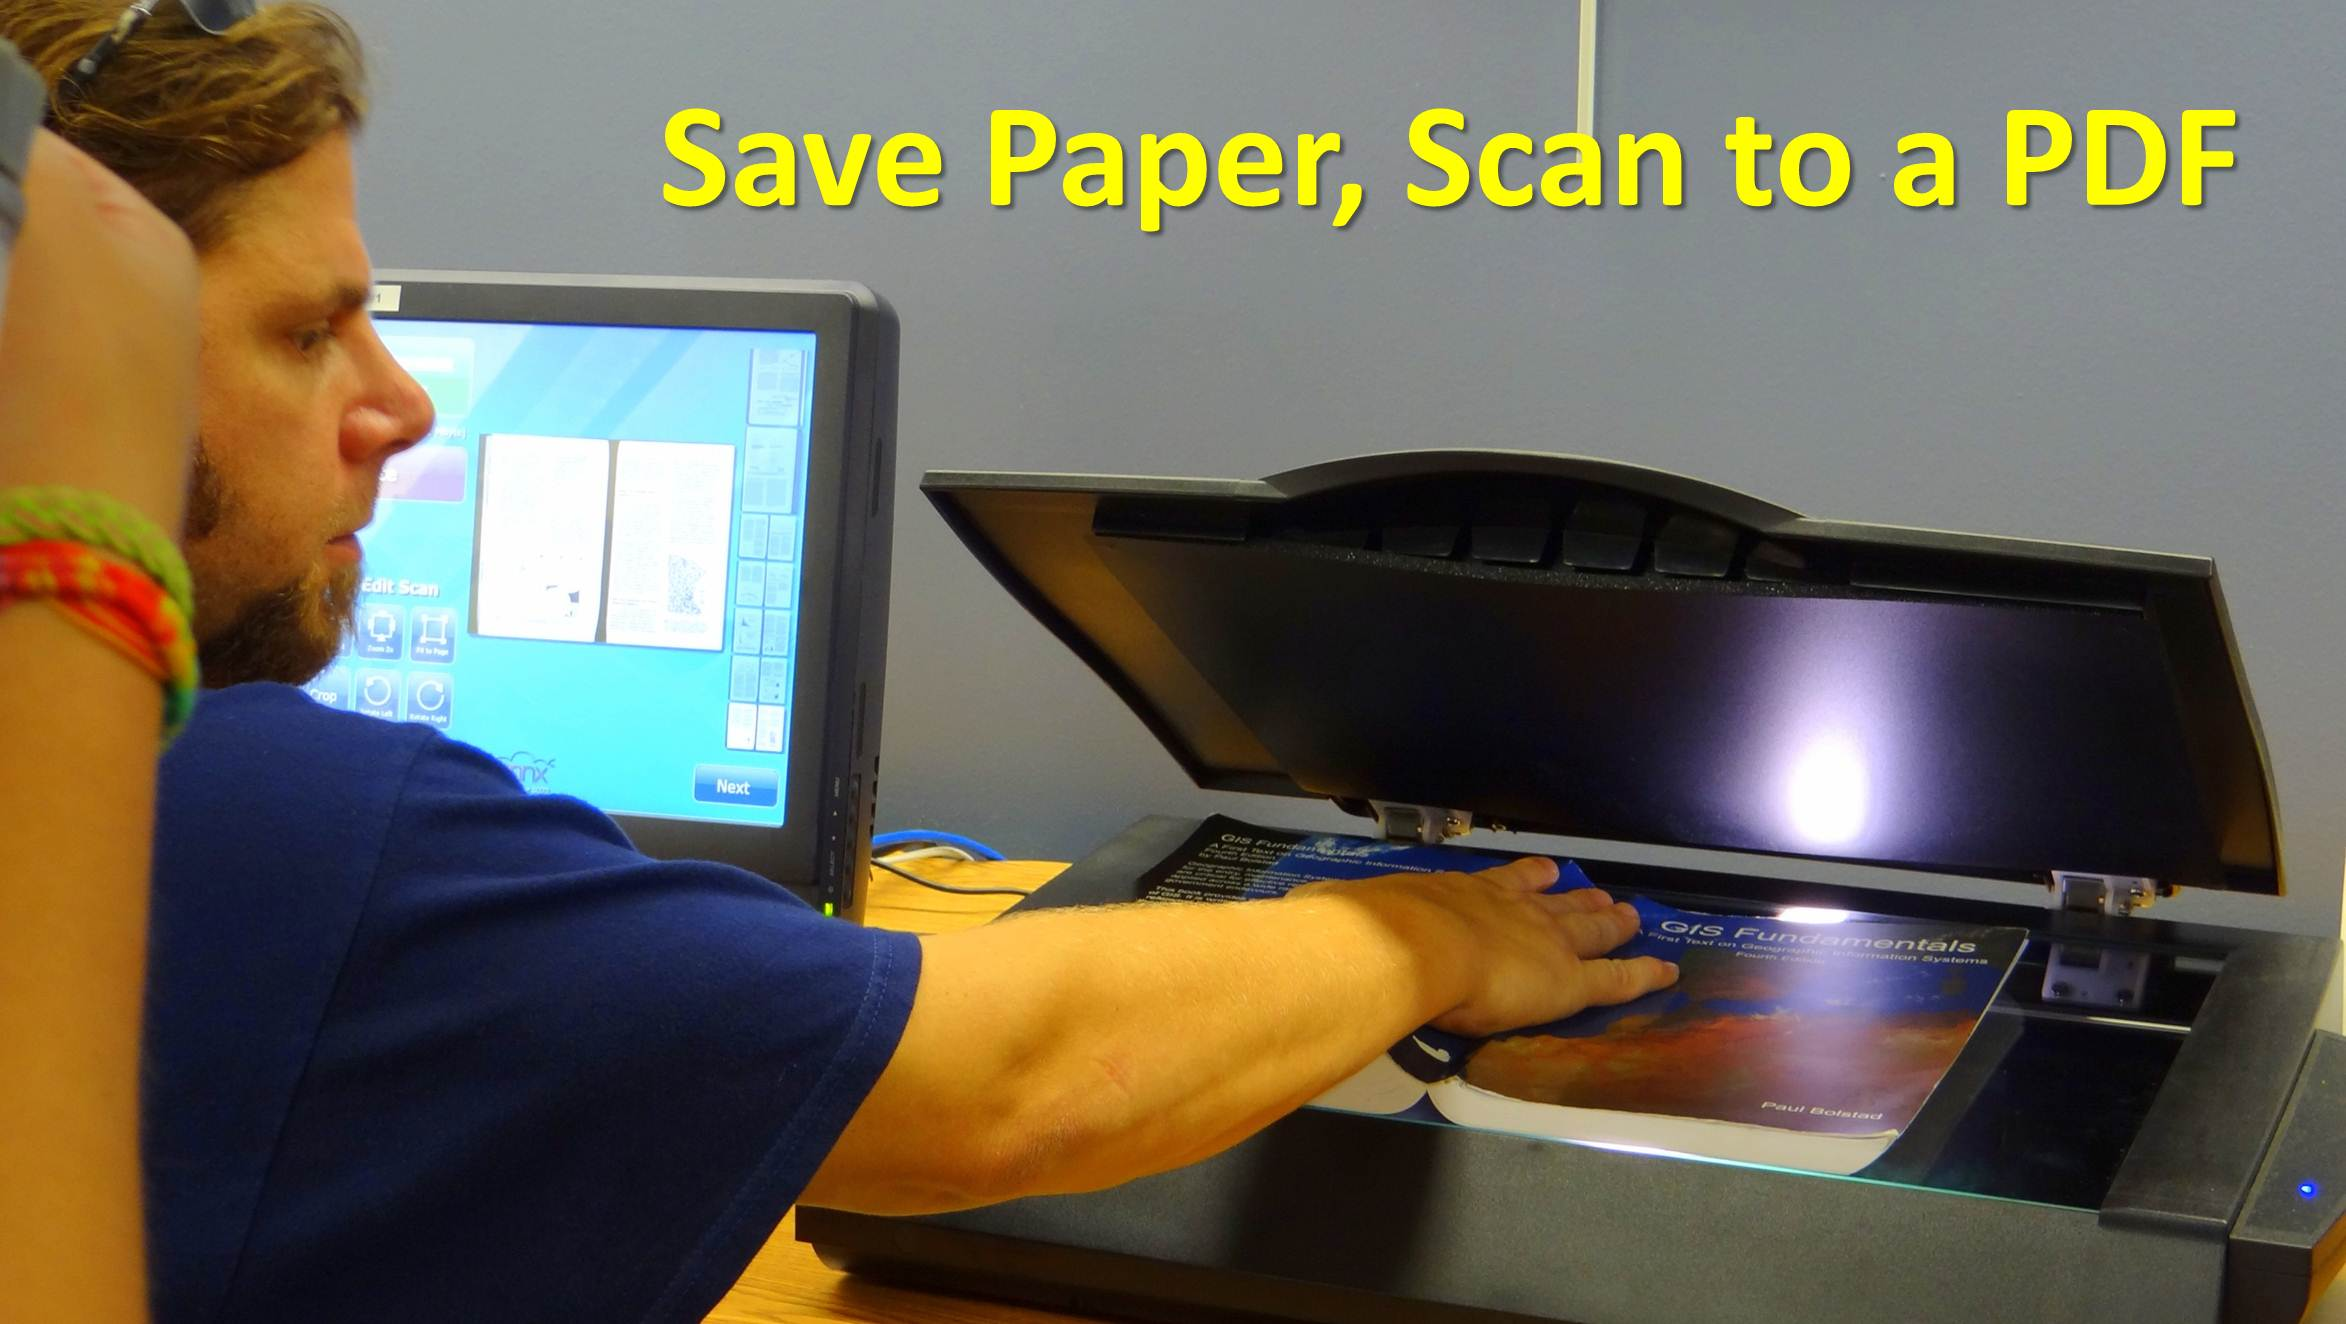 Use Our Scanners (image)